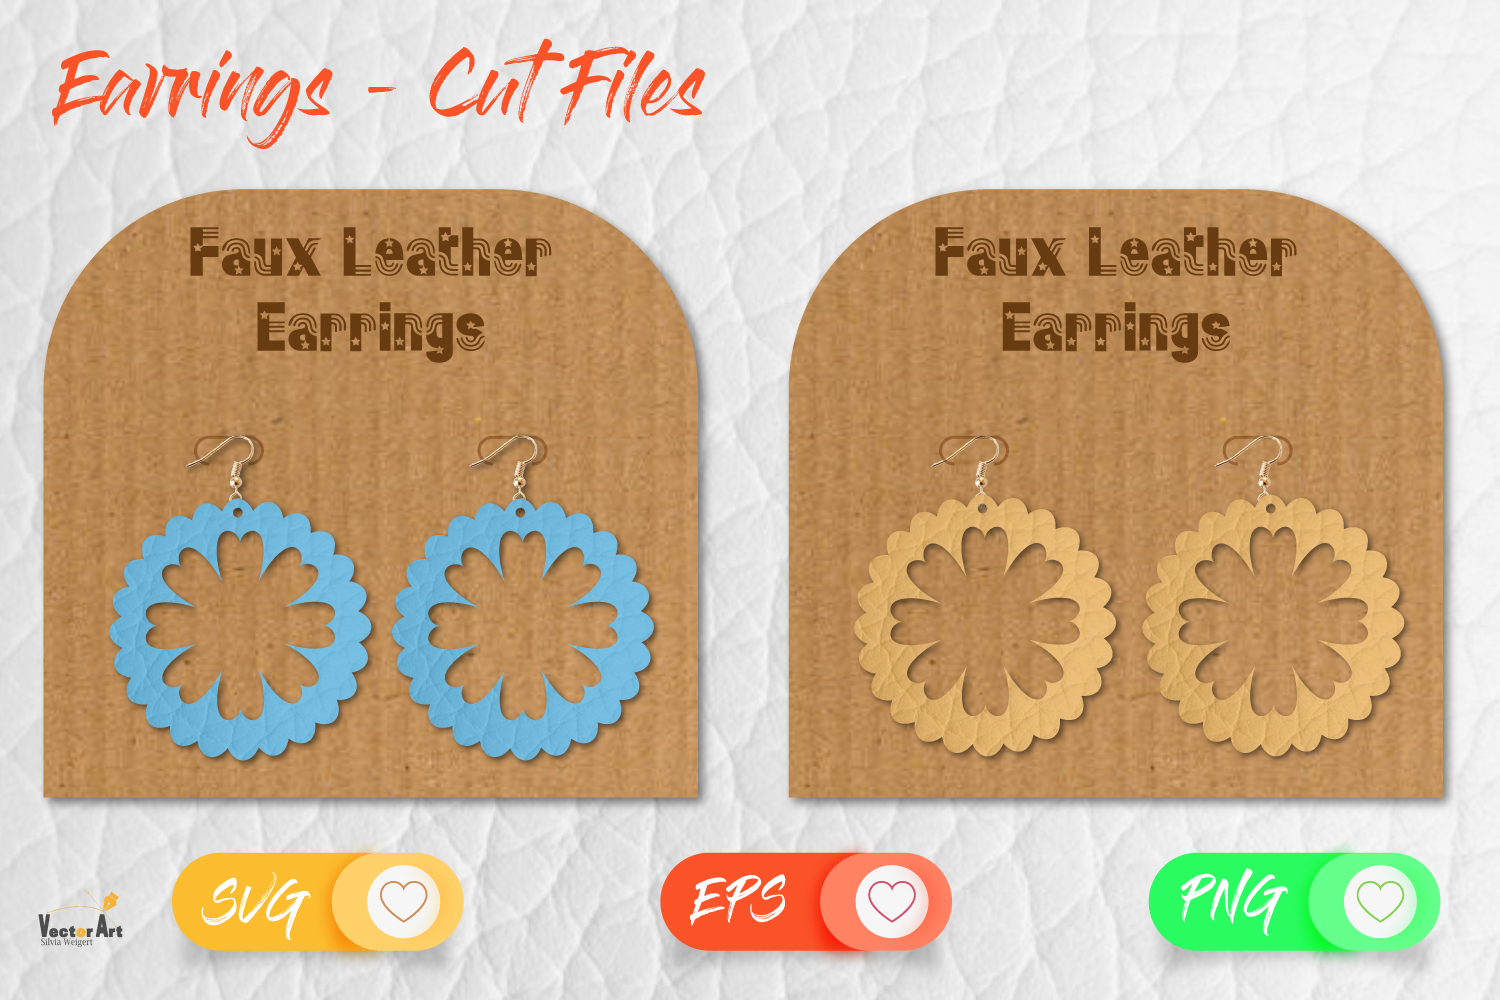 5 Earrings - Mini Bundle - Cut files example image 13